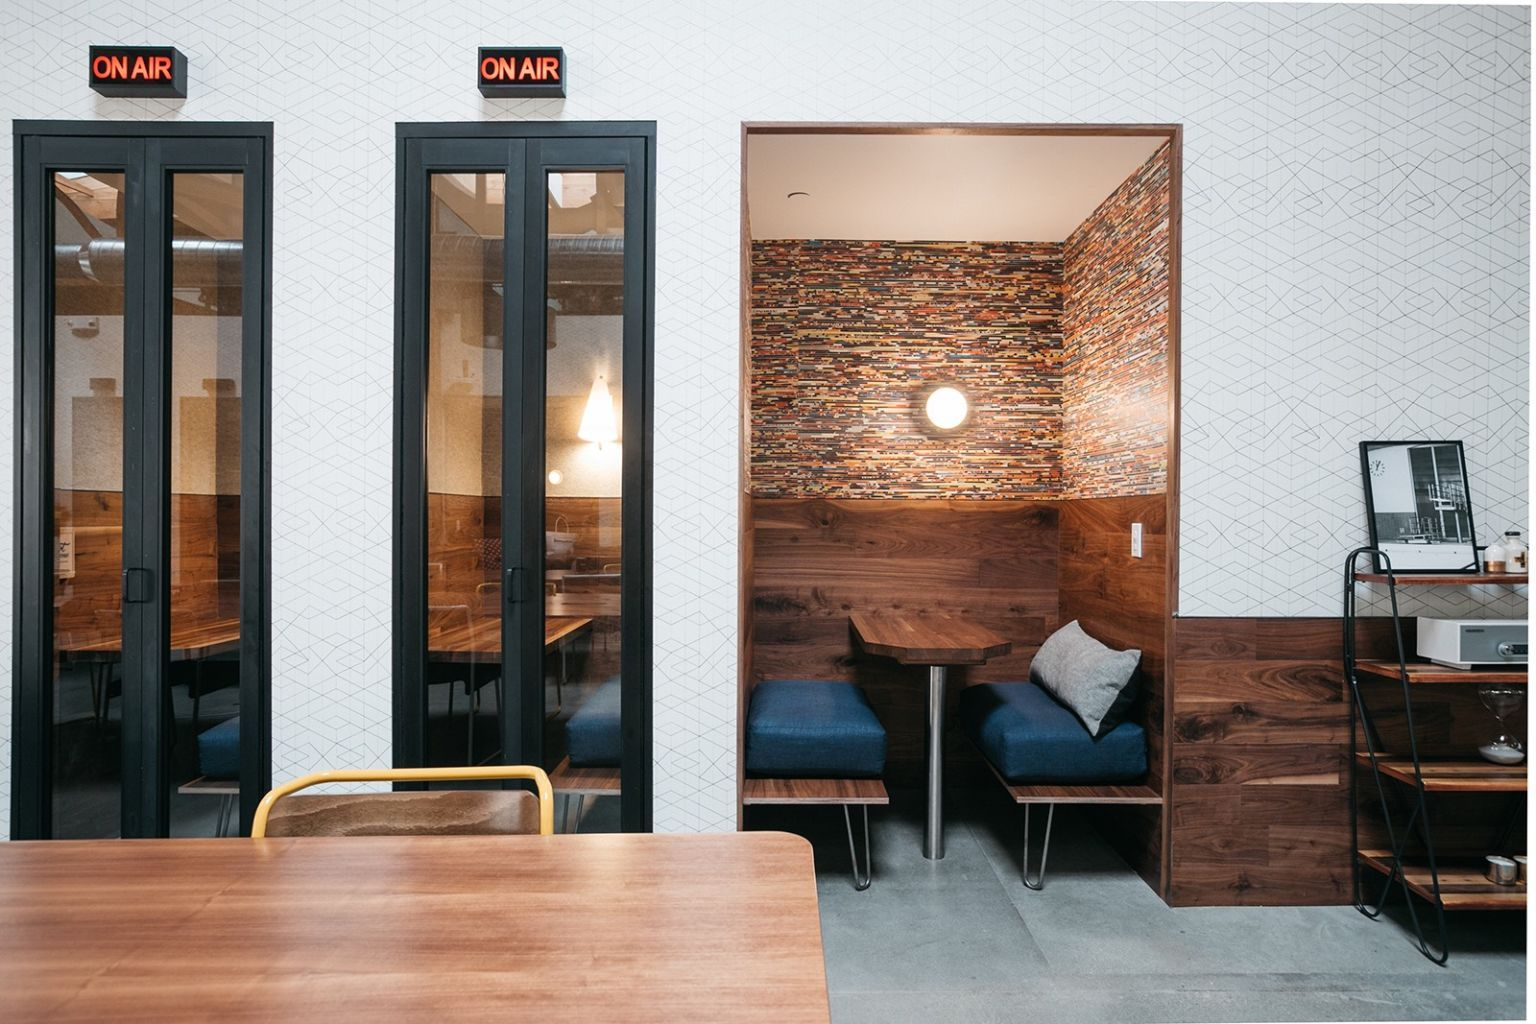 A Tour Of Wework S Culver City Coworking Space Officelovin Coworking Space Design Phone Booth Office Coworking Space